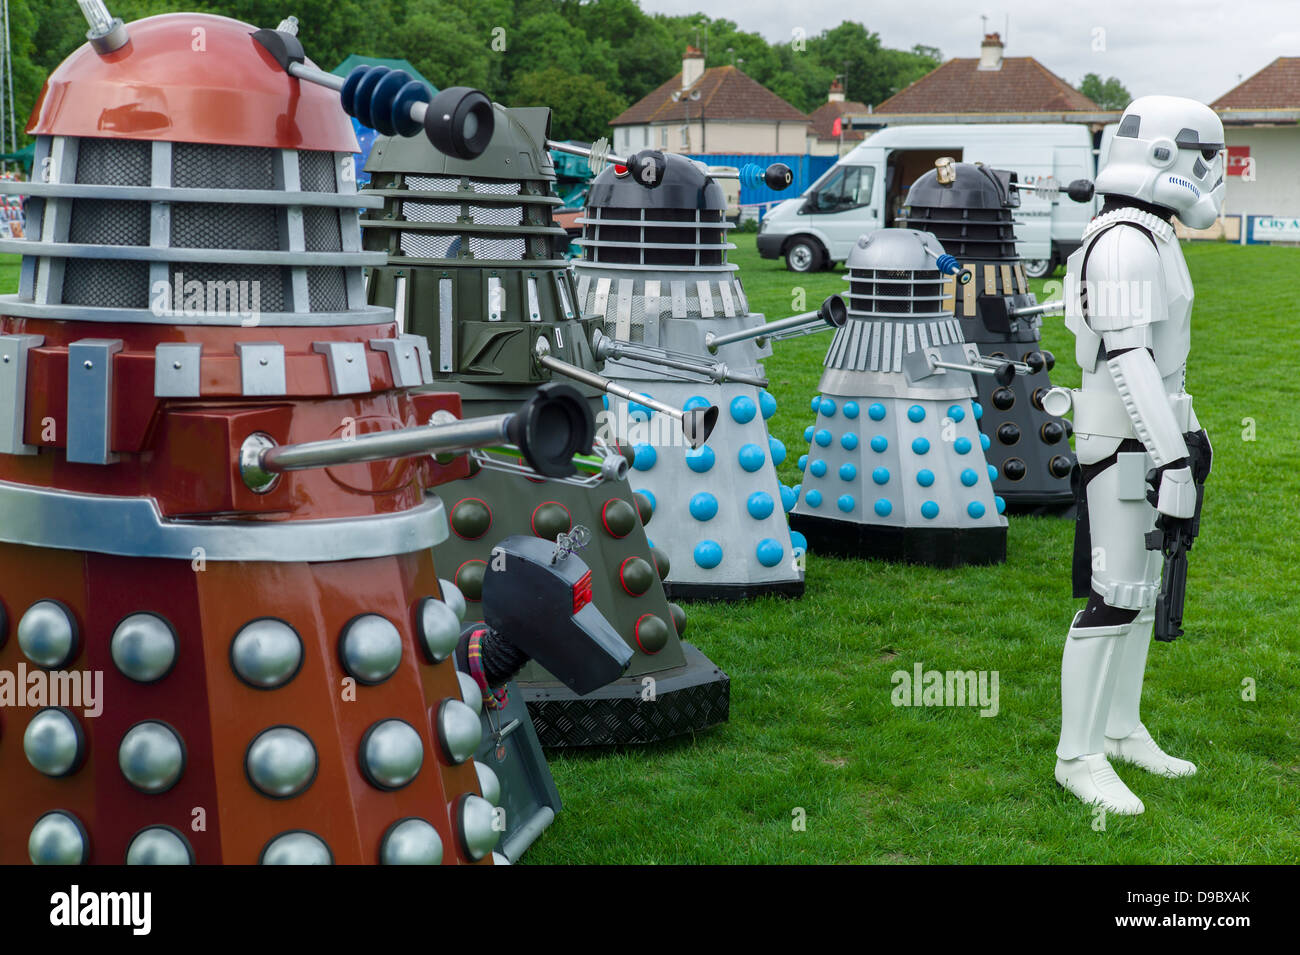 Daleks and a storm Trooper line up at the Herne Bay Si-Fi by the sea event - Stock Image